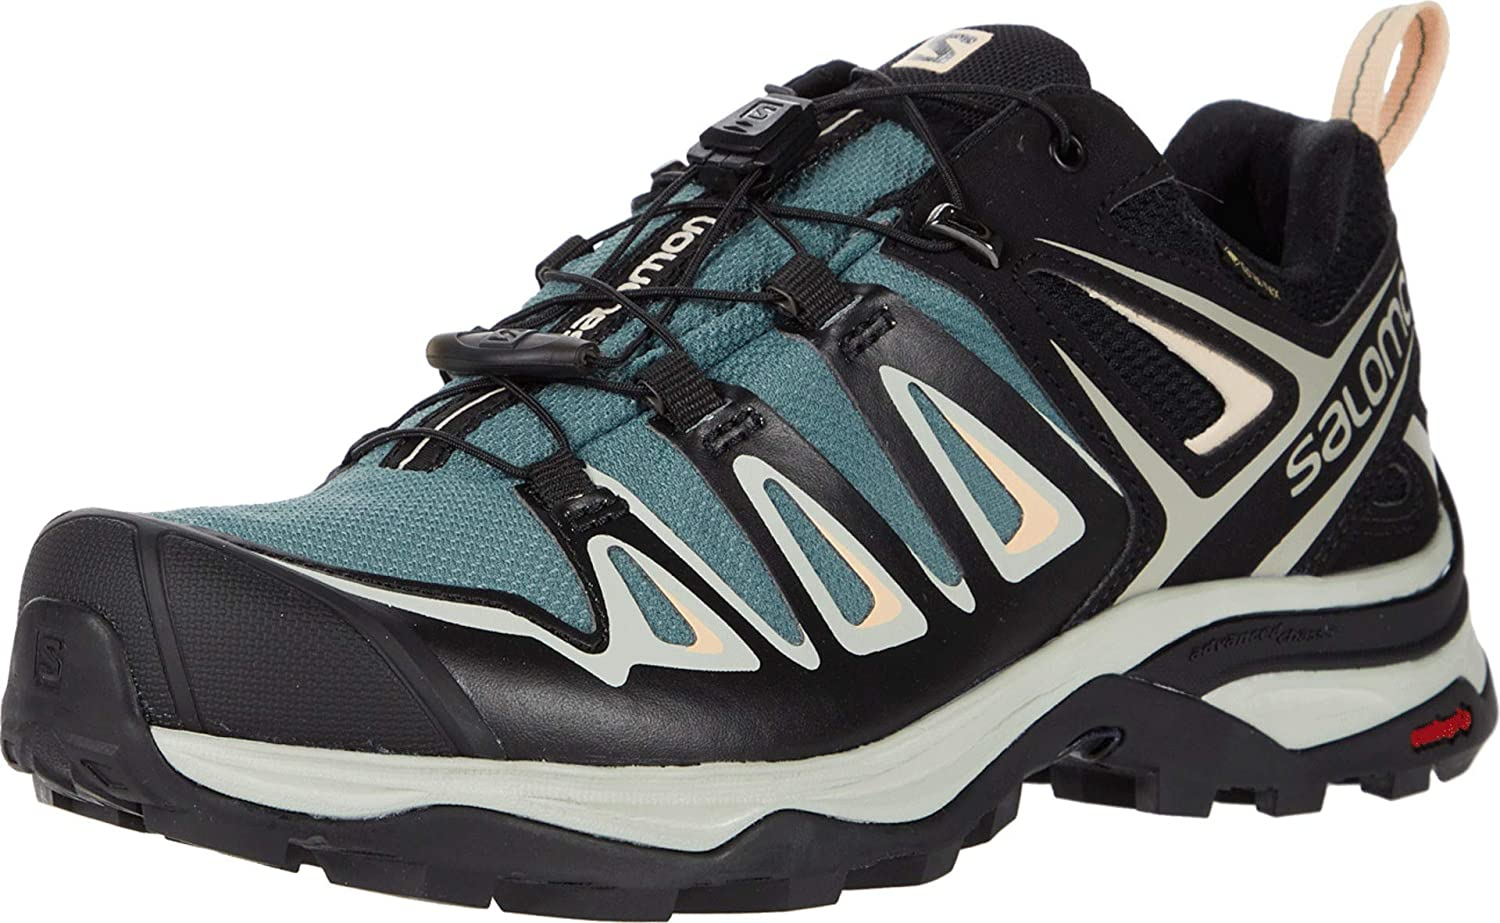 SALOMON Shoes X Ultra, Zapatillas de Hiking para Mujer: Amazon.es: Zapatos y complementos